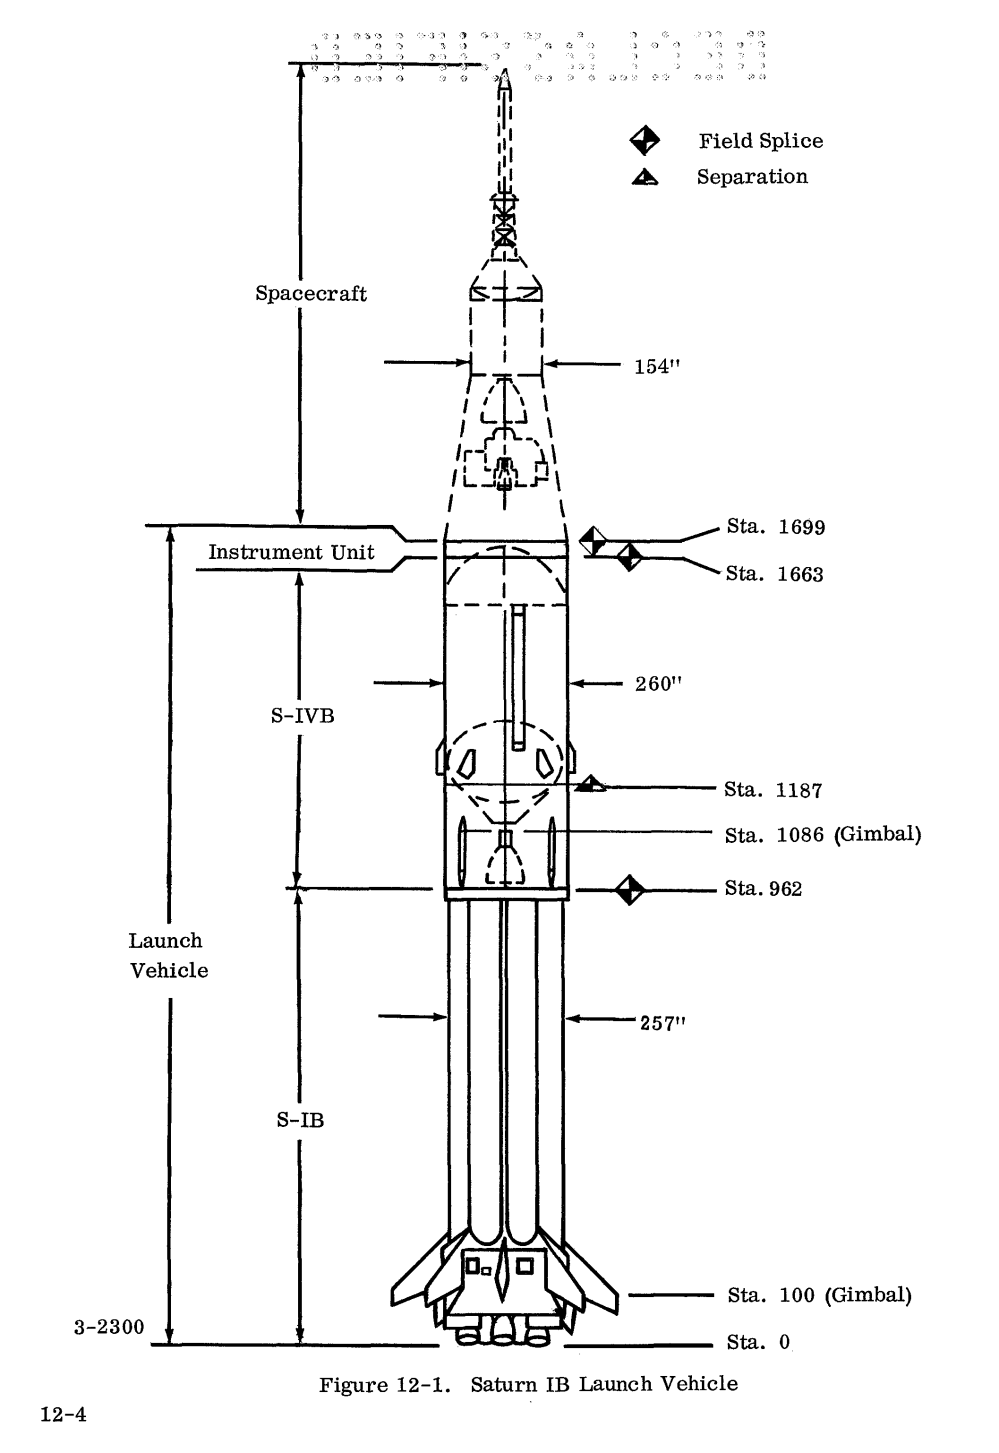 medium resolution of saturn ib arrangement diagram 1964